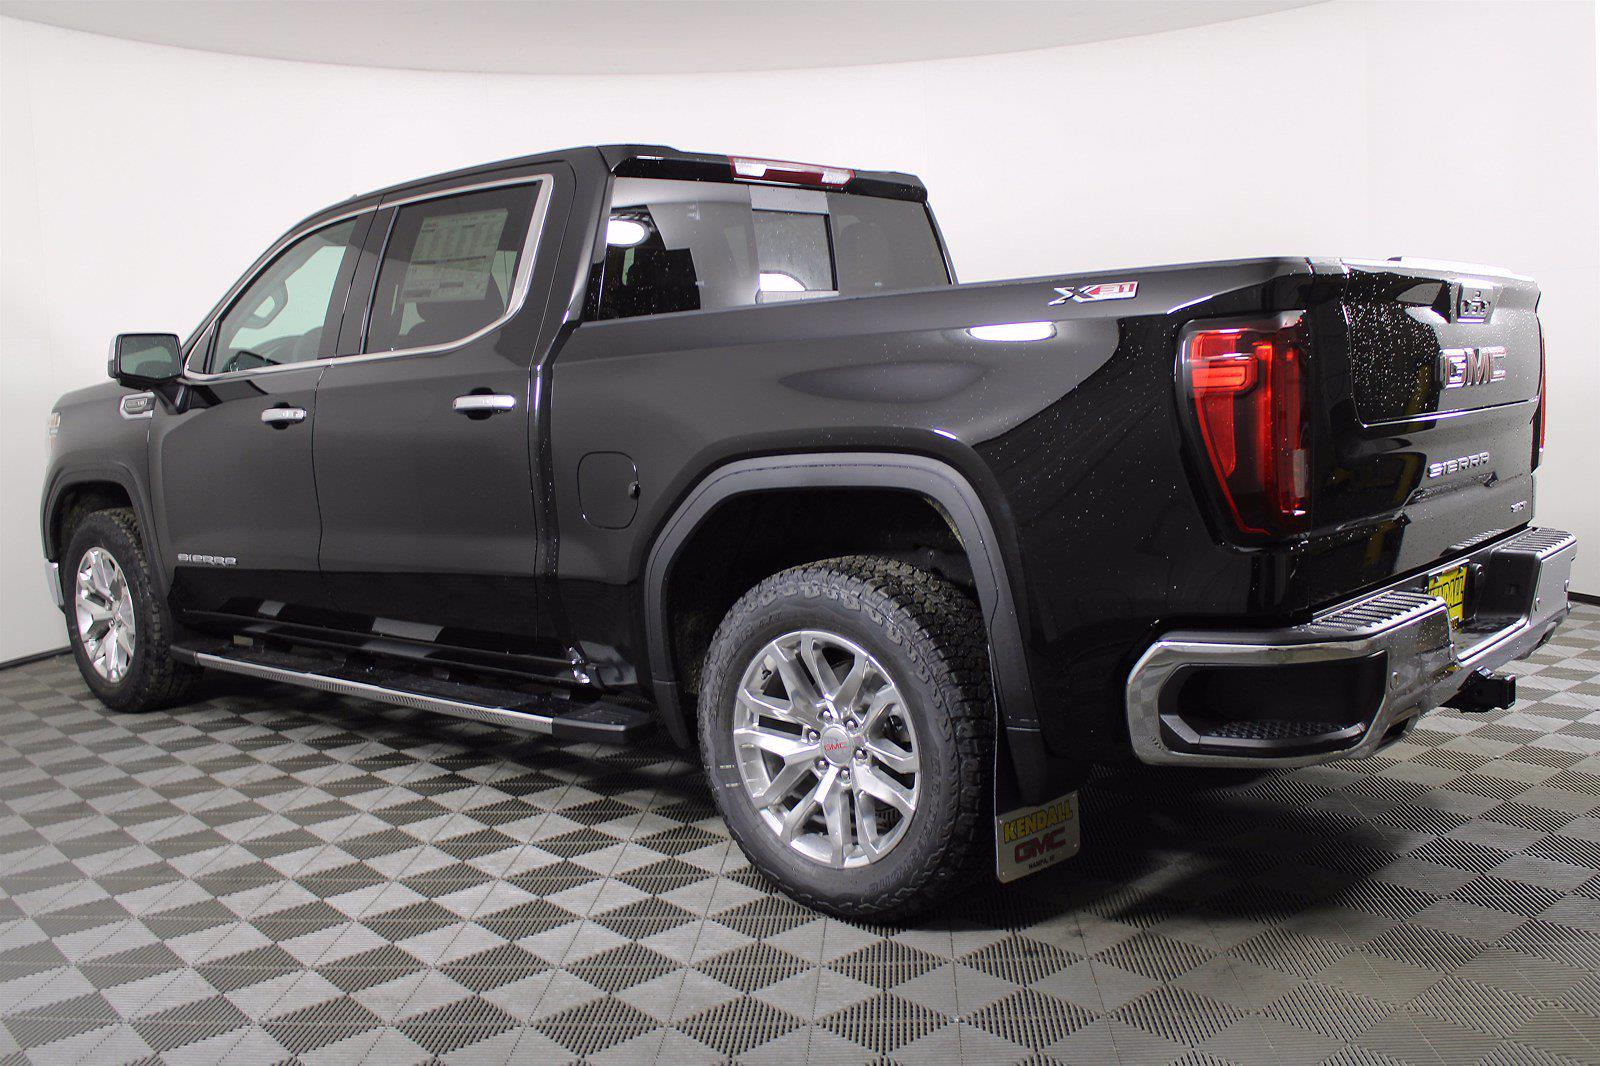 2021 GMC Sierra 1500 Crew Cab 4x4, Pickup #D410580 - photo 1